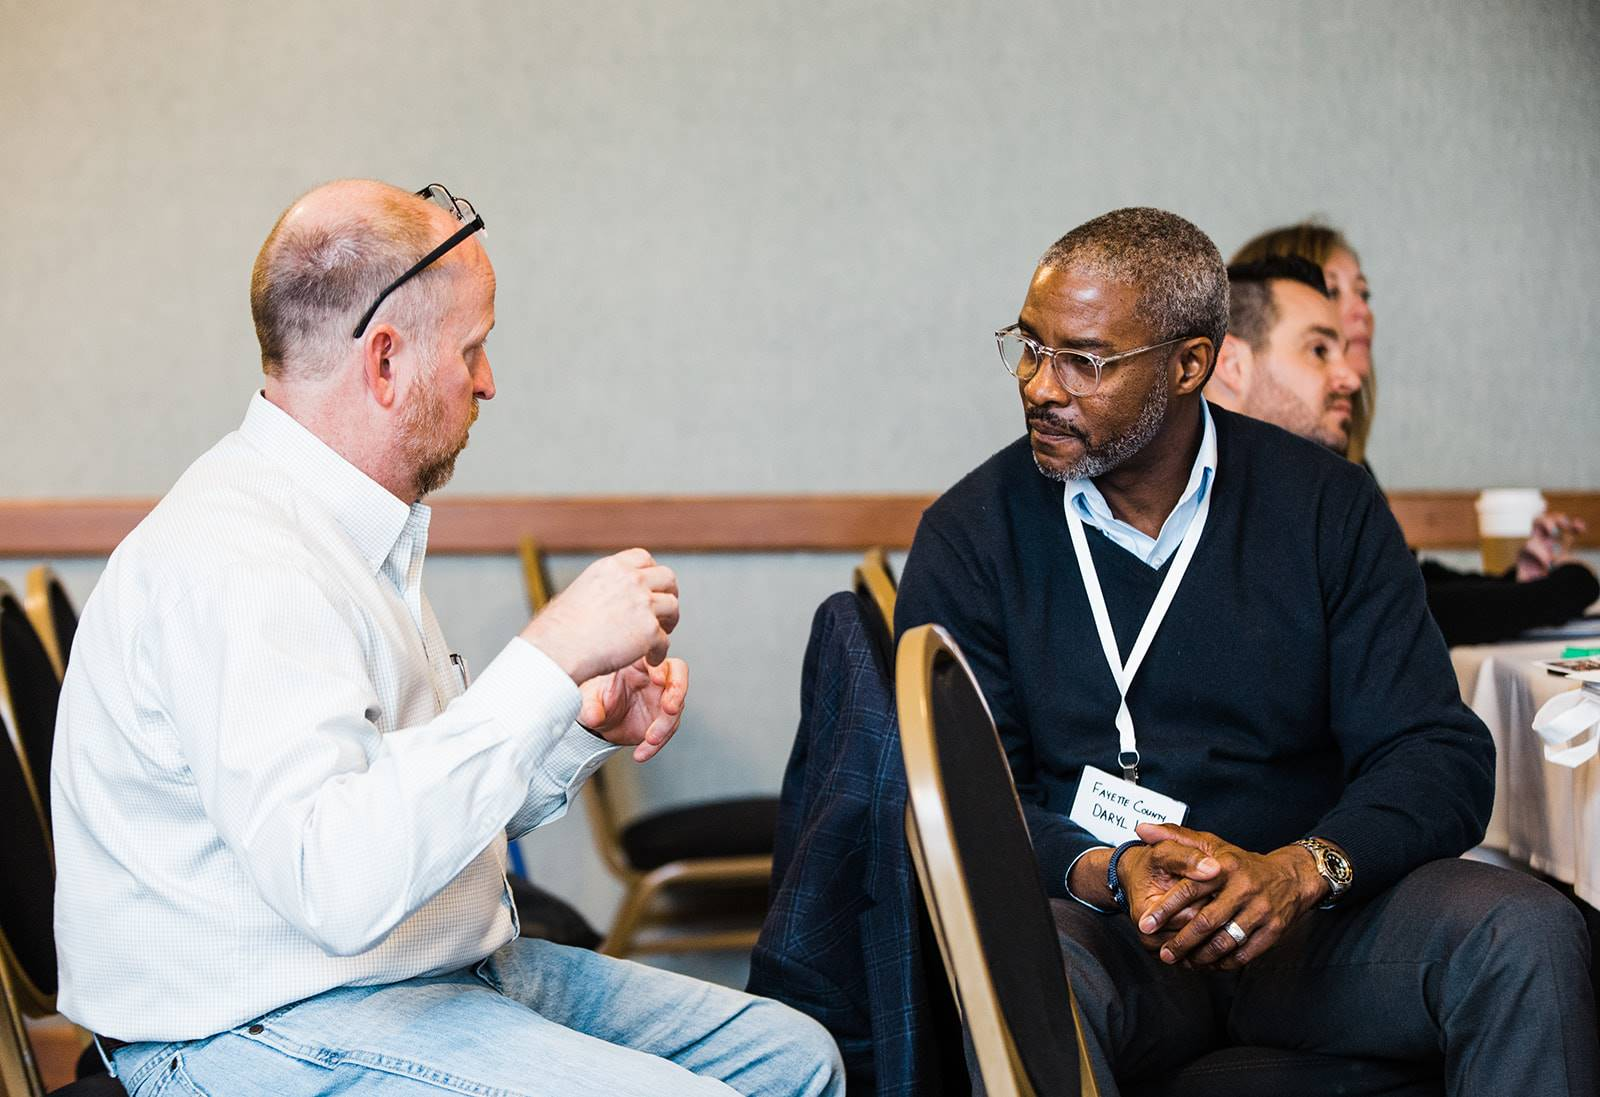 Two conference attendees interacting.